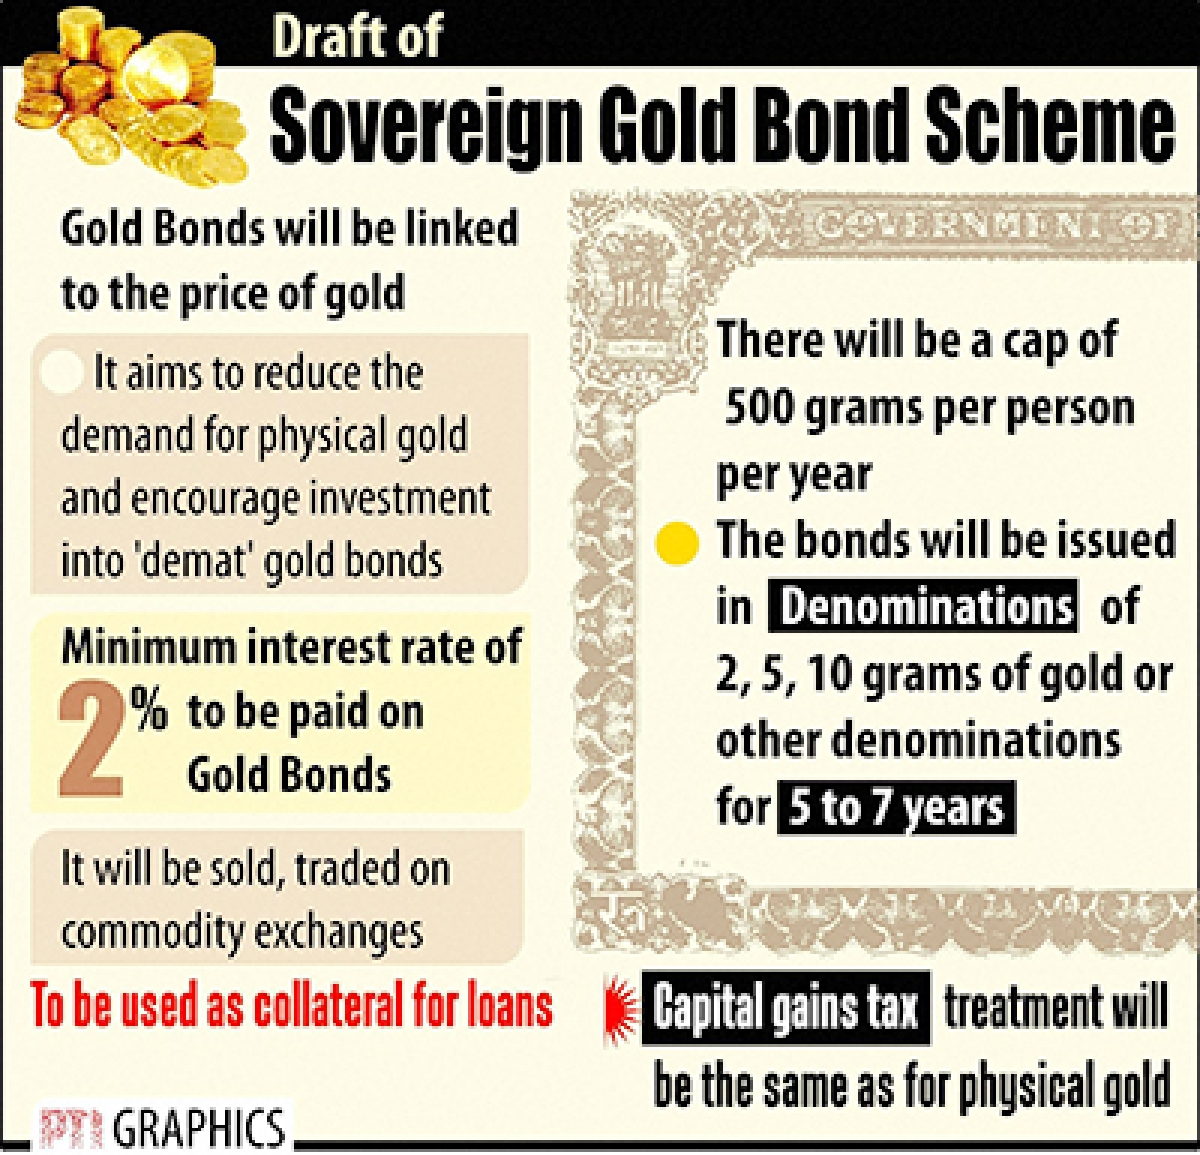 Govt plans to raise Rs 13k cr  via gold bonds in first year